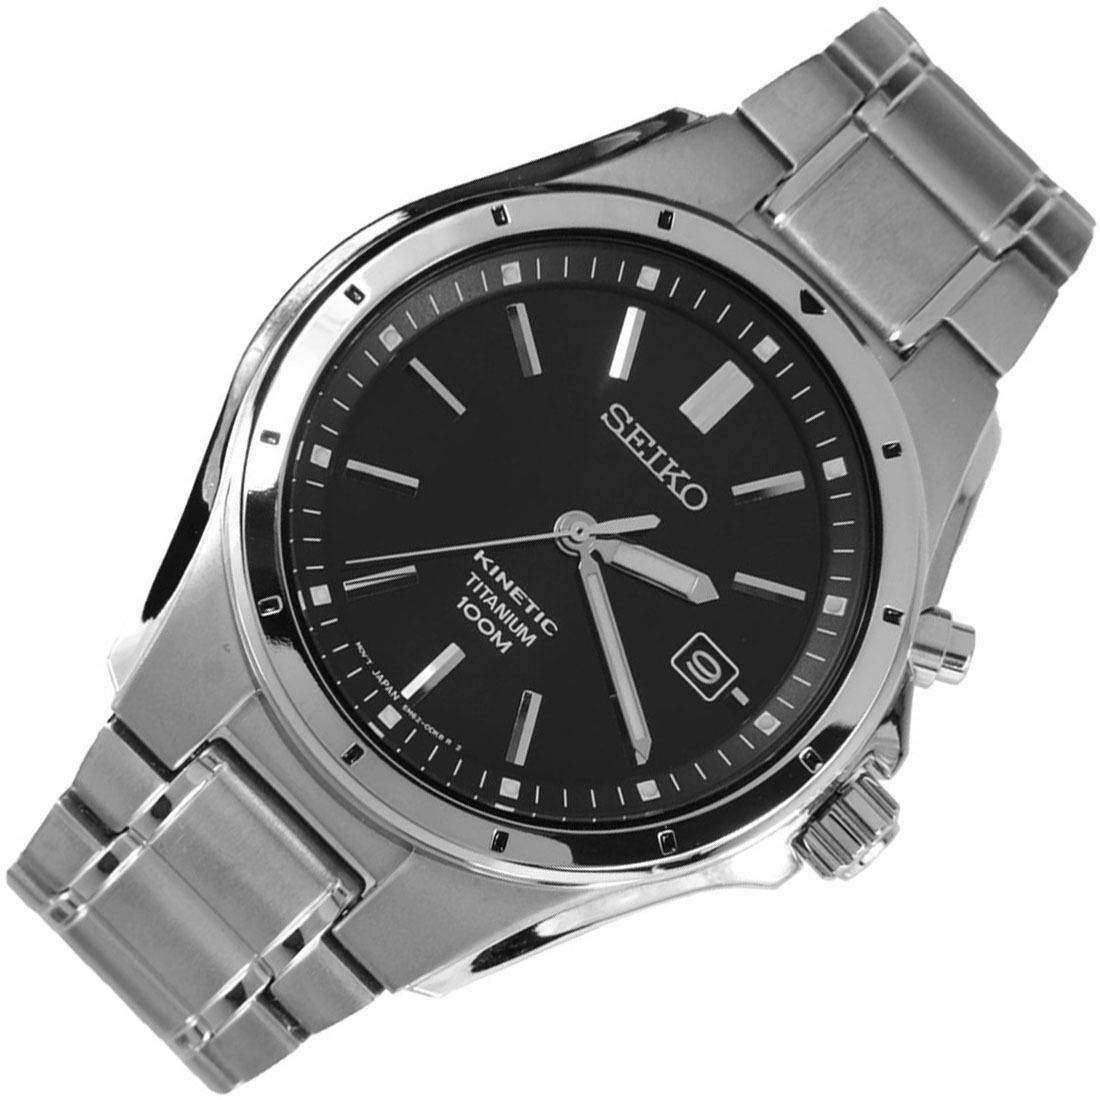 Seiko kinetic ska493p1 ska493 mens titanium watch seiko titanium watches seiko watches for Titanium watches